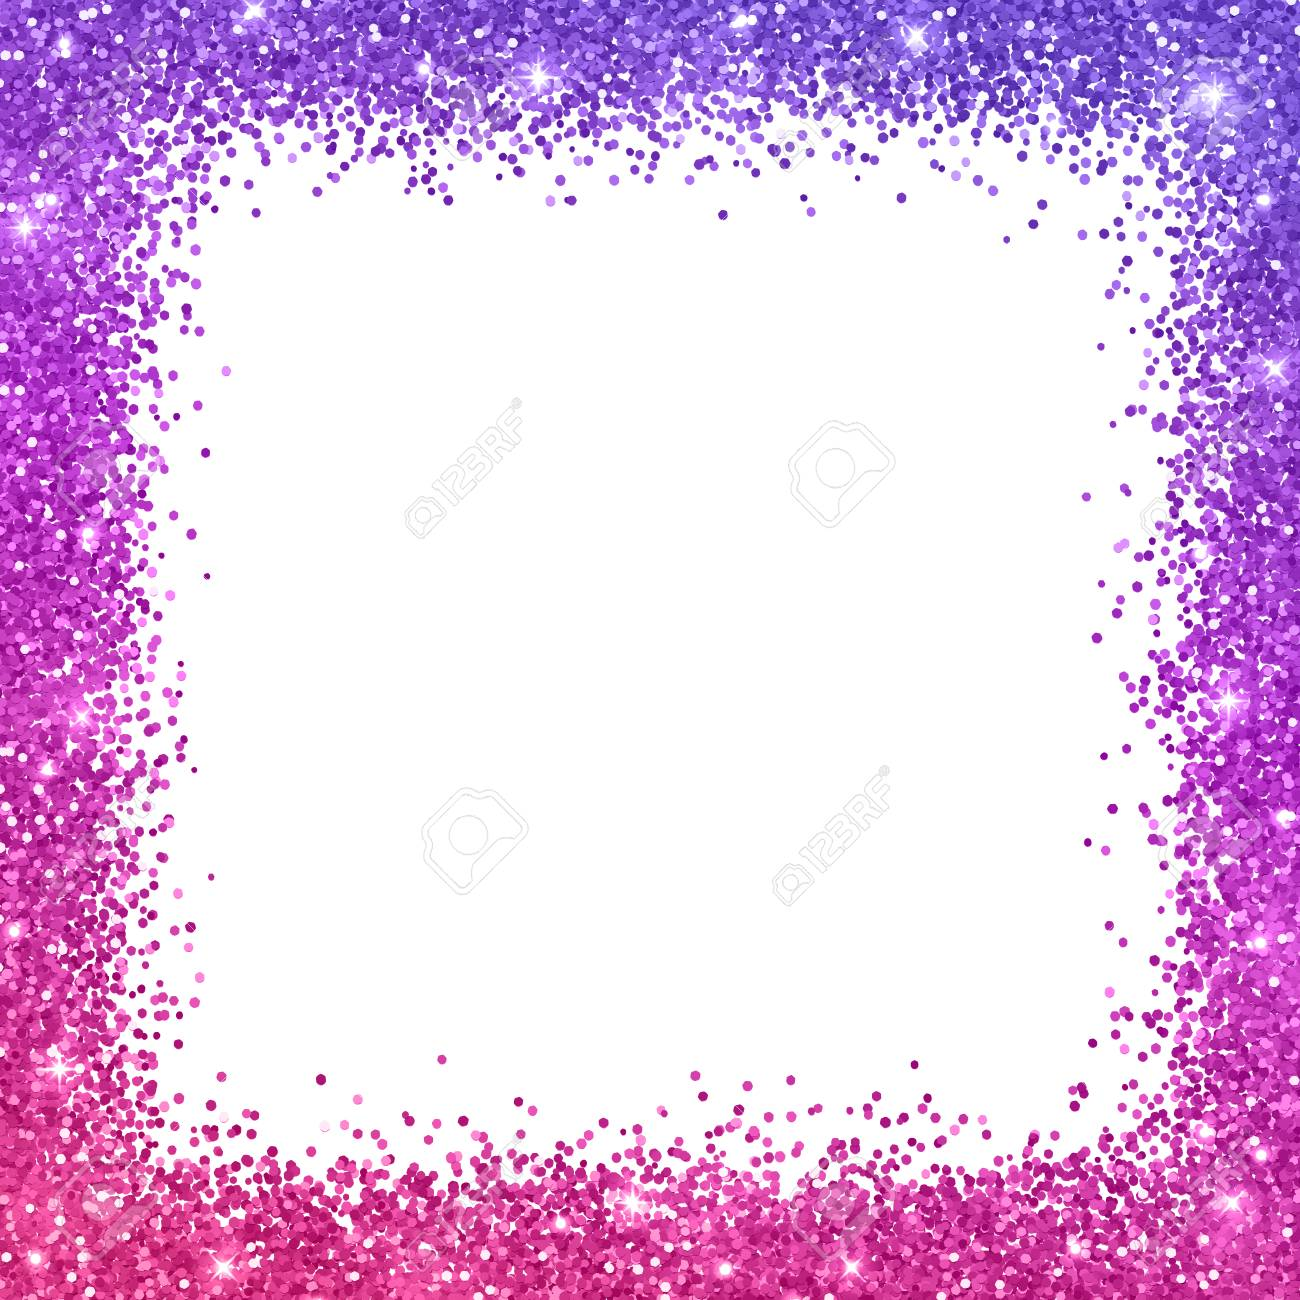 Glitter Square Border Frame With Purple Pink Color Effect On